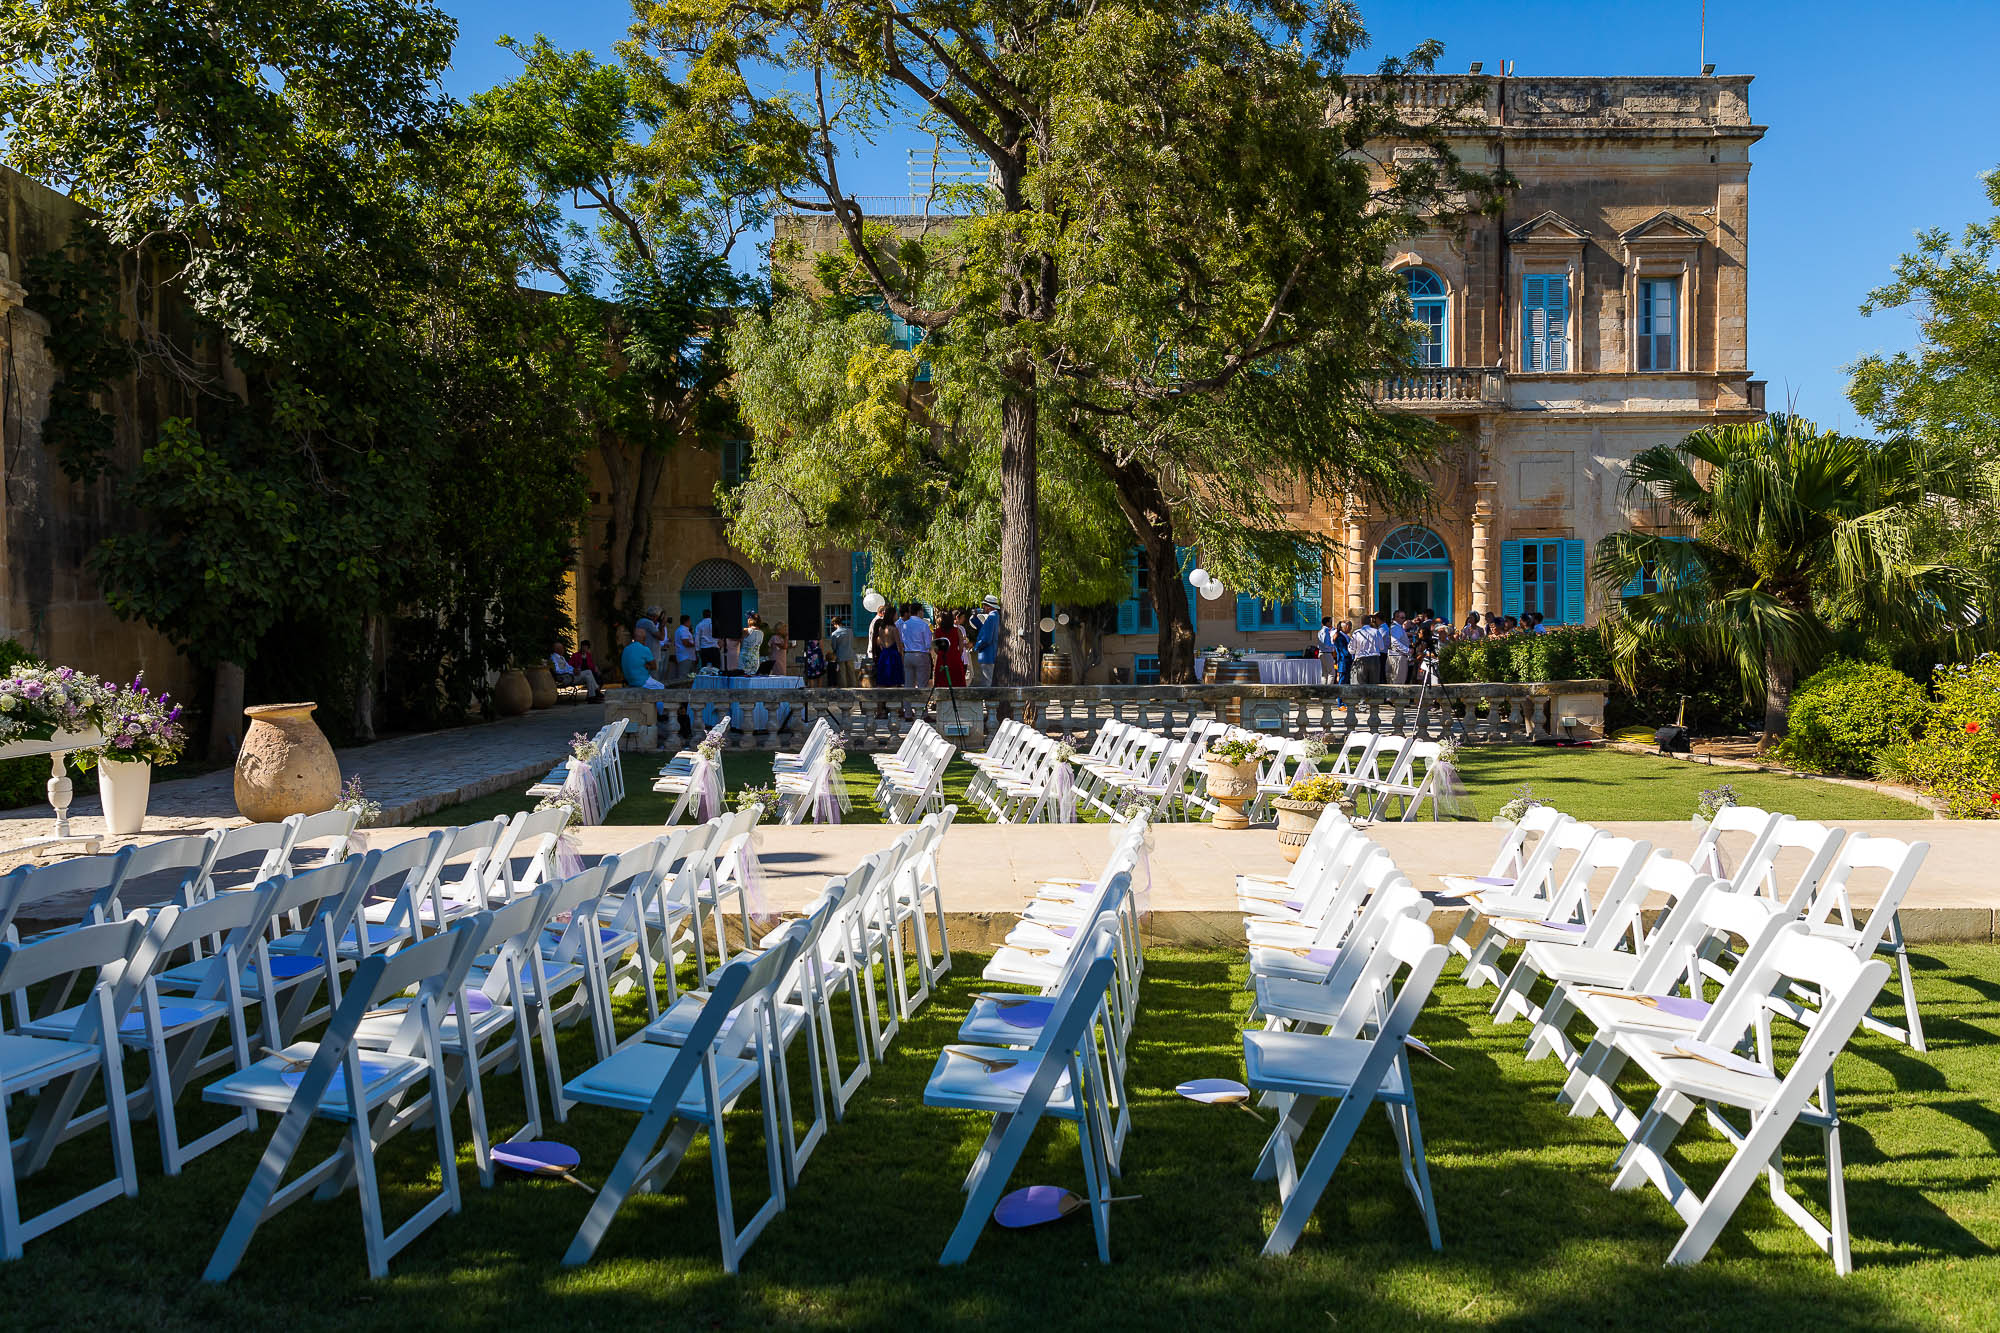 Civil ceremony setup in the baroque garden of Villa Bologna in Malta. Photo by Elliot Nichol Photography.